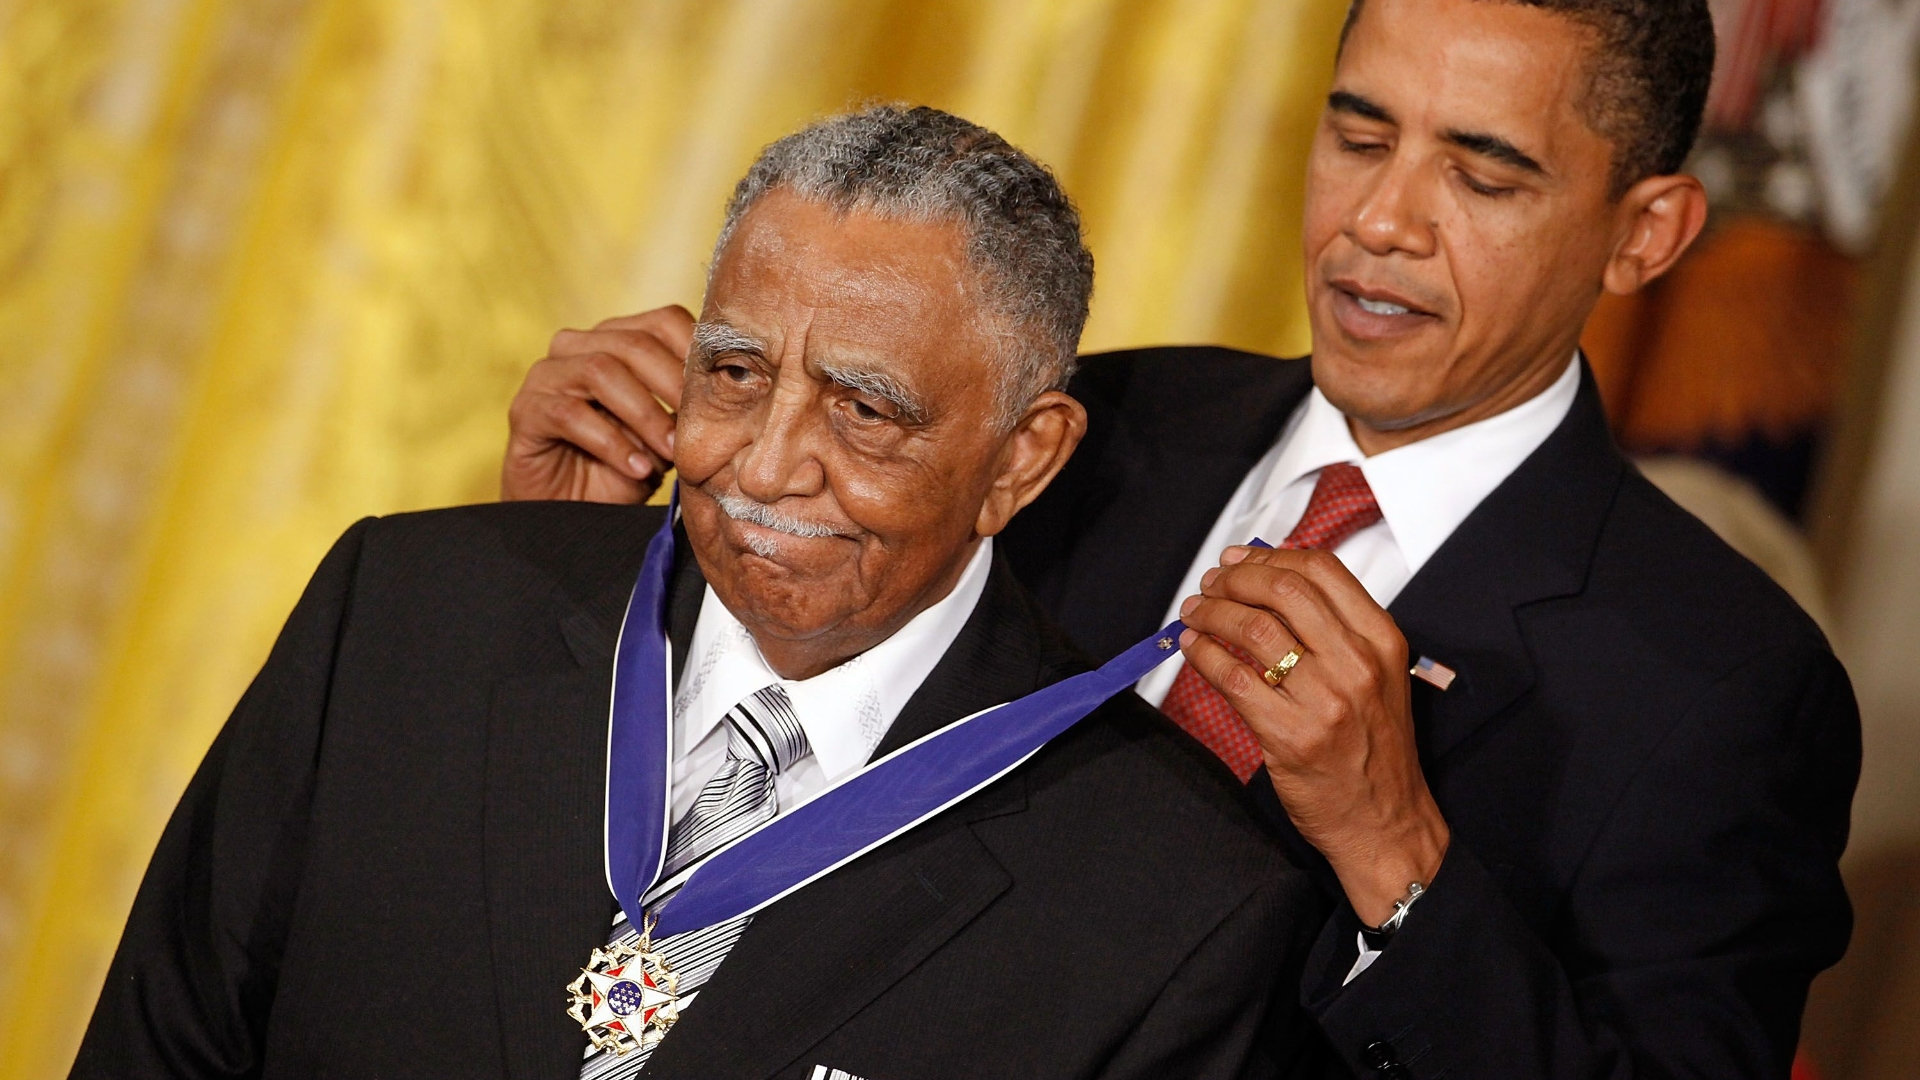 Civil Rights Icon Rev. Joseph Lowery passes away at age 98